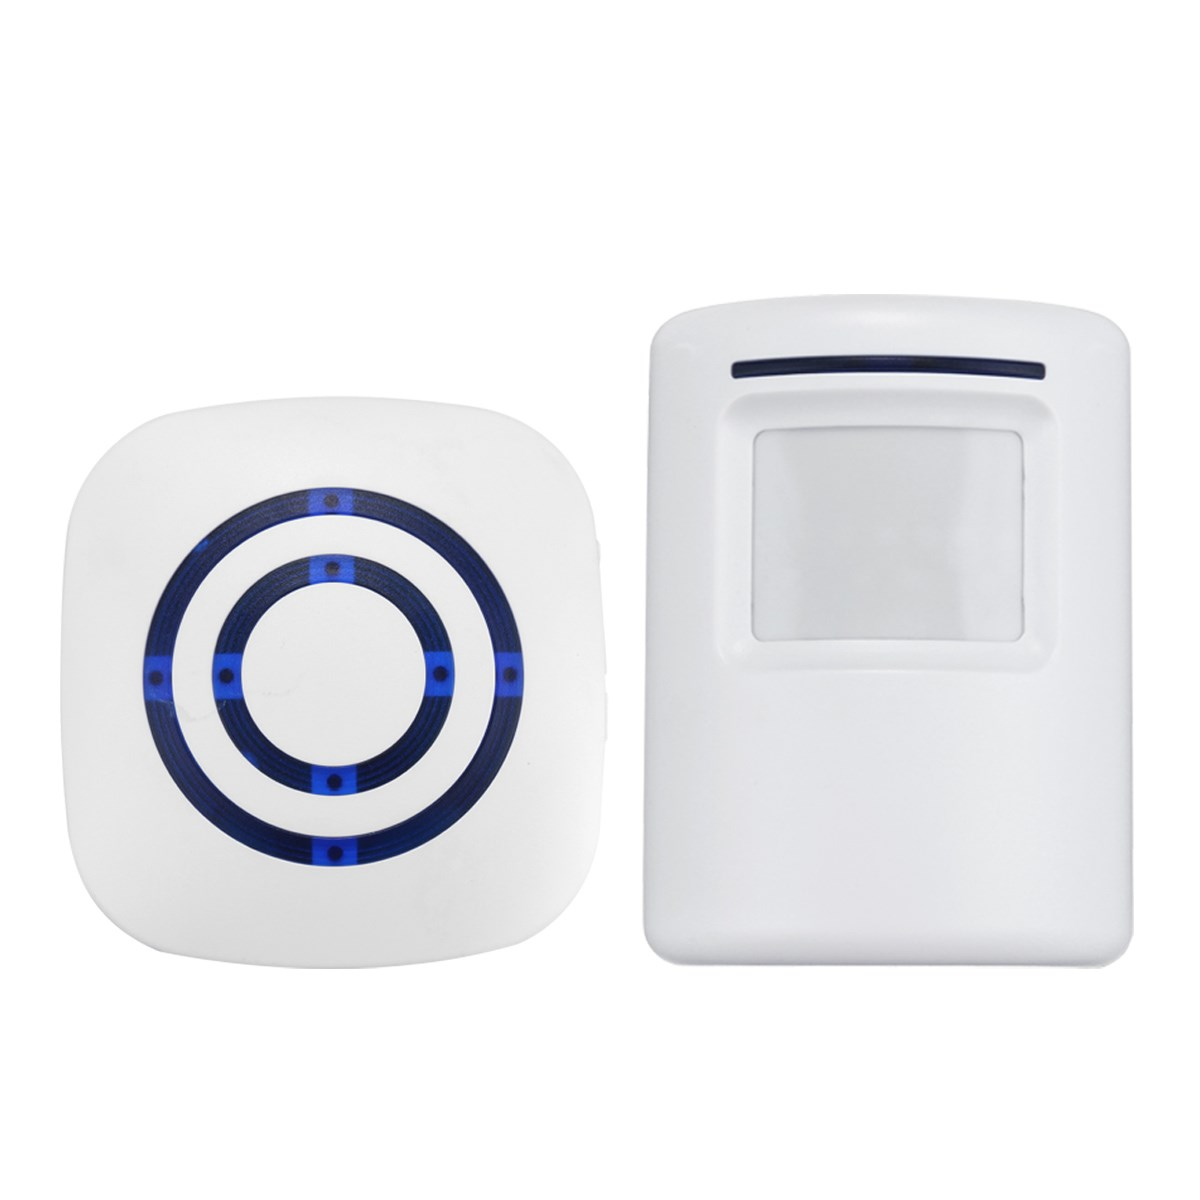 NEW Wireless Motion Sensor Detector Gate Entry Door Bell Welcome Chime Alert Alarm Home Automation Home Security ks v2 welcom chime bell sensor